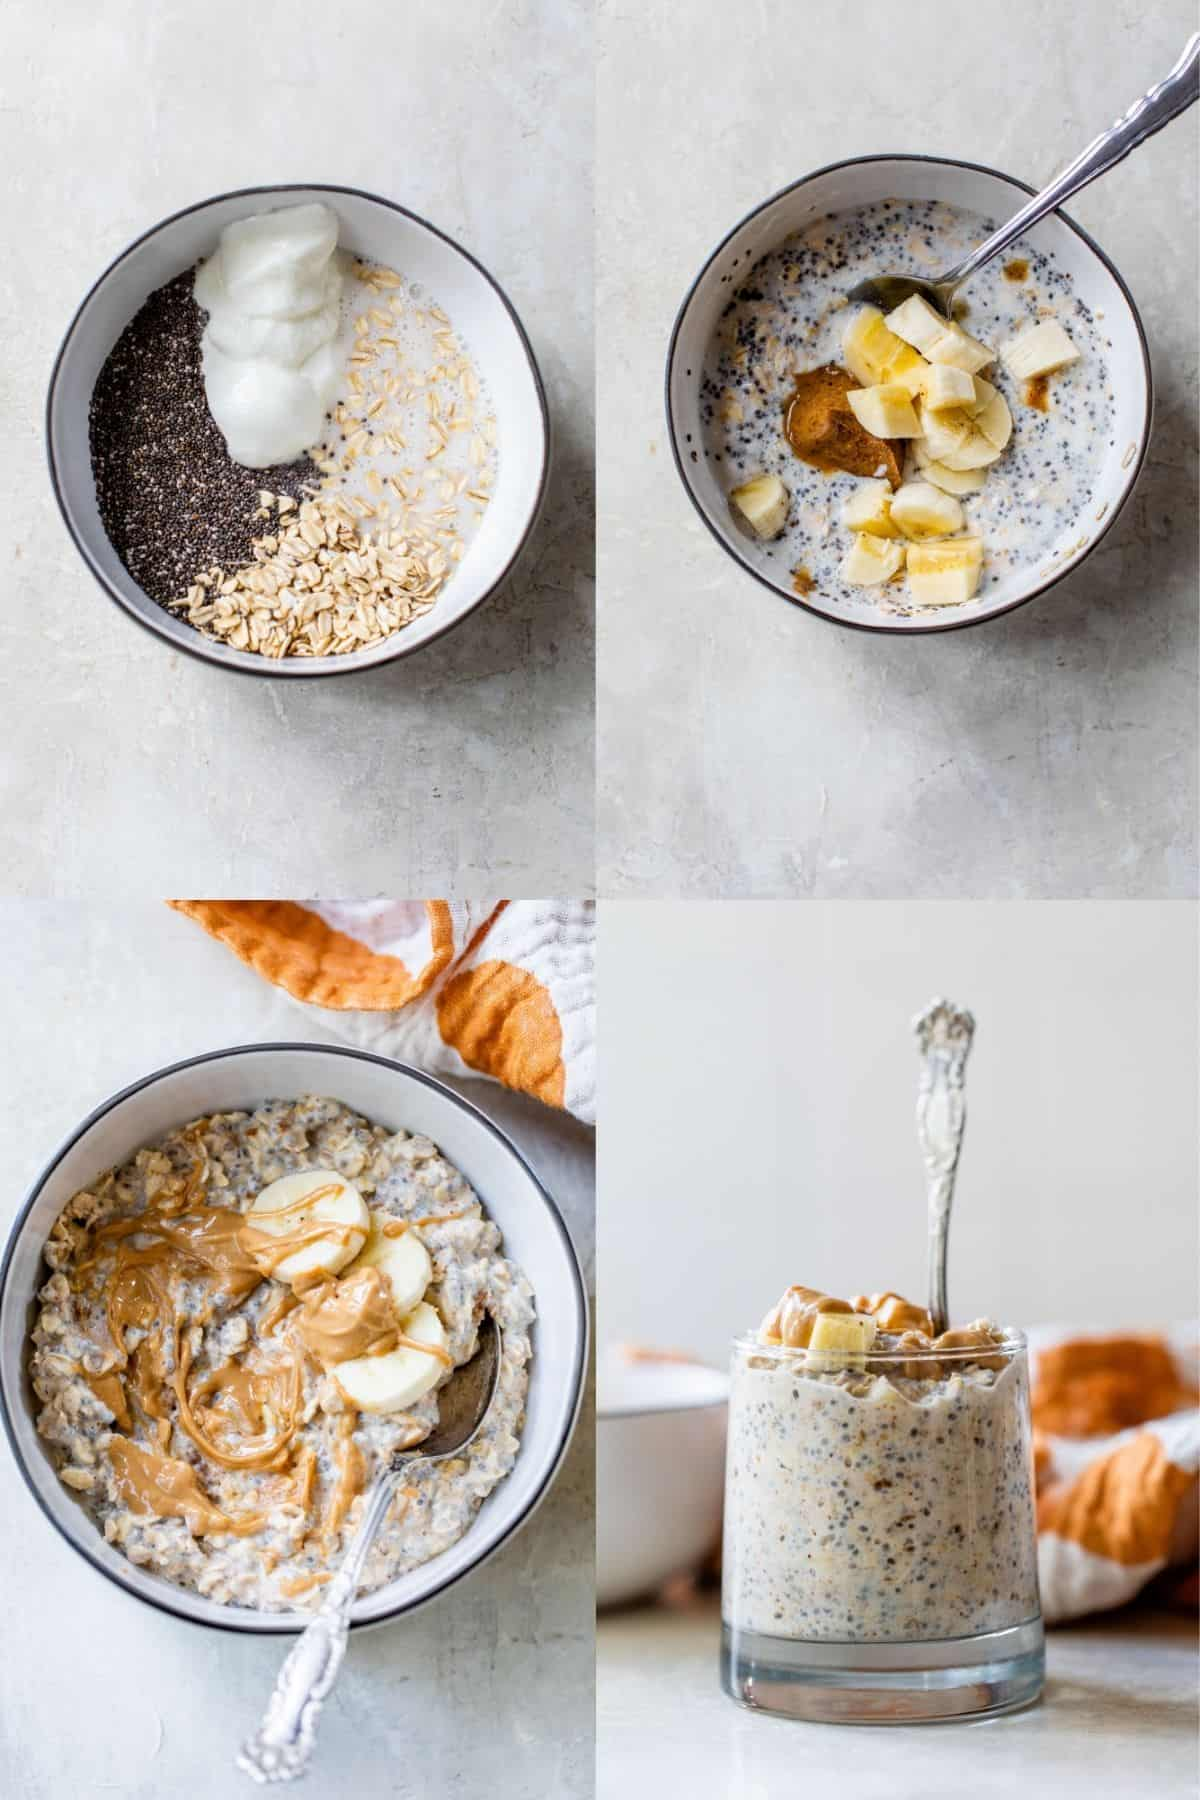 showing how to mix ingredients to make peanut butter banana overnight oats